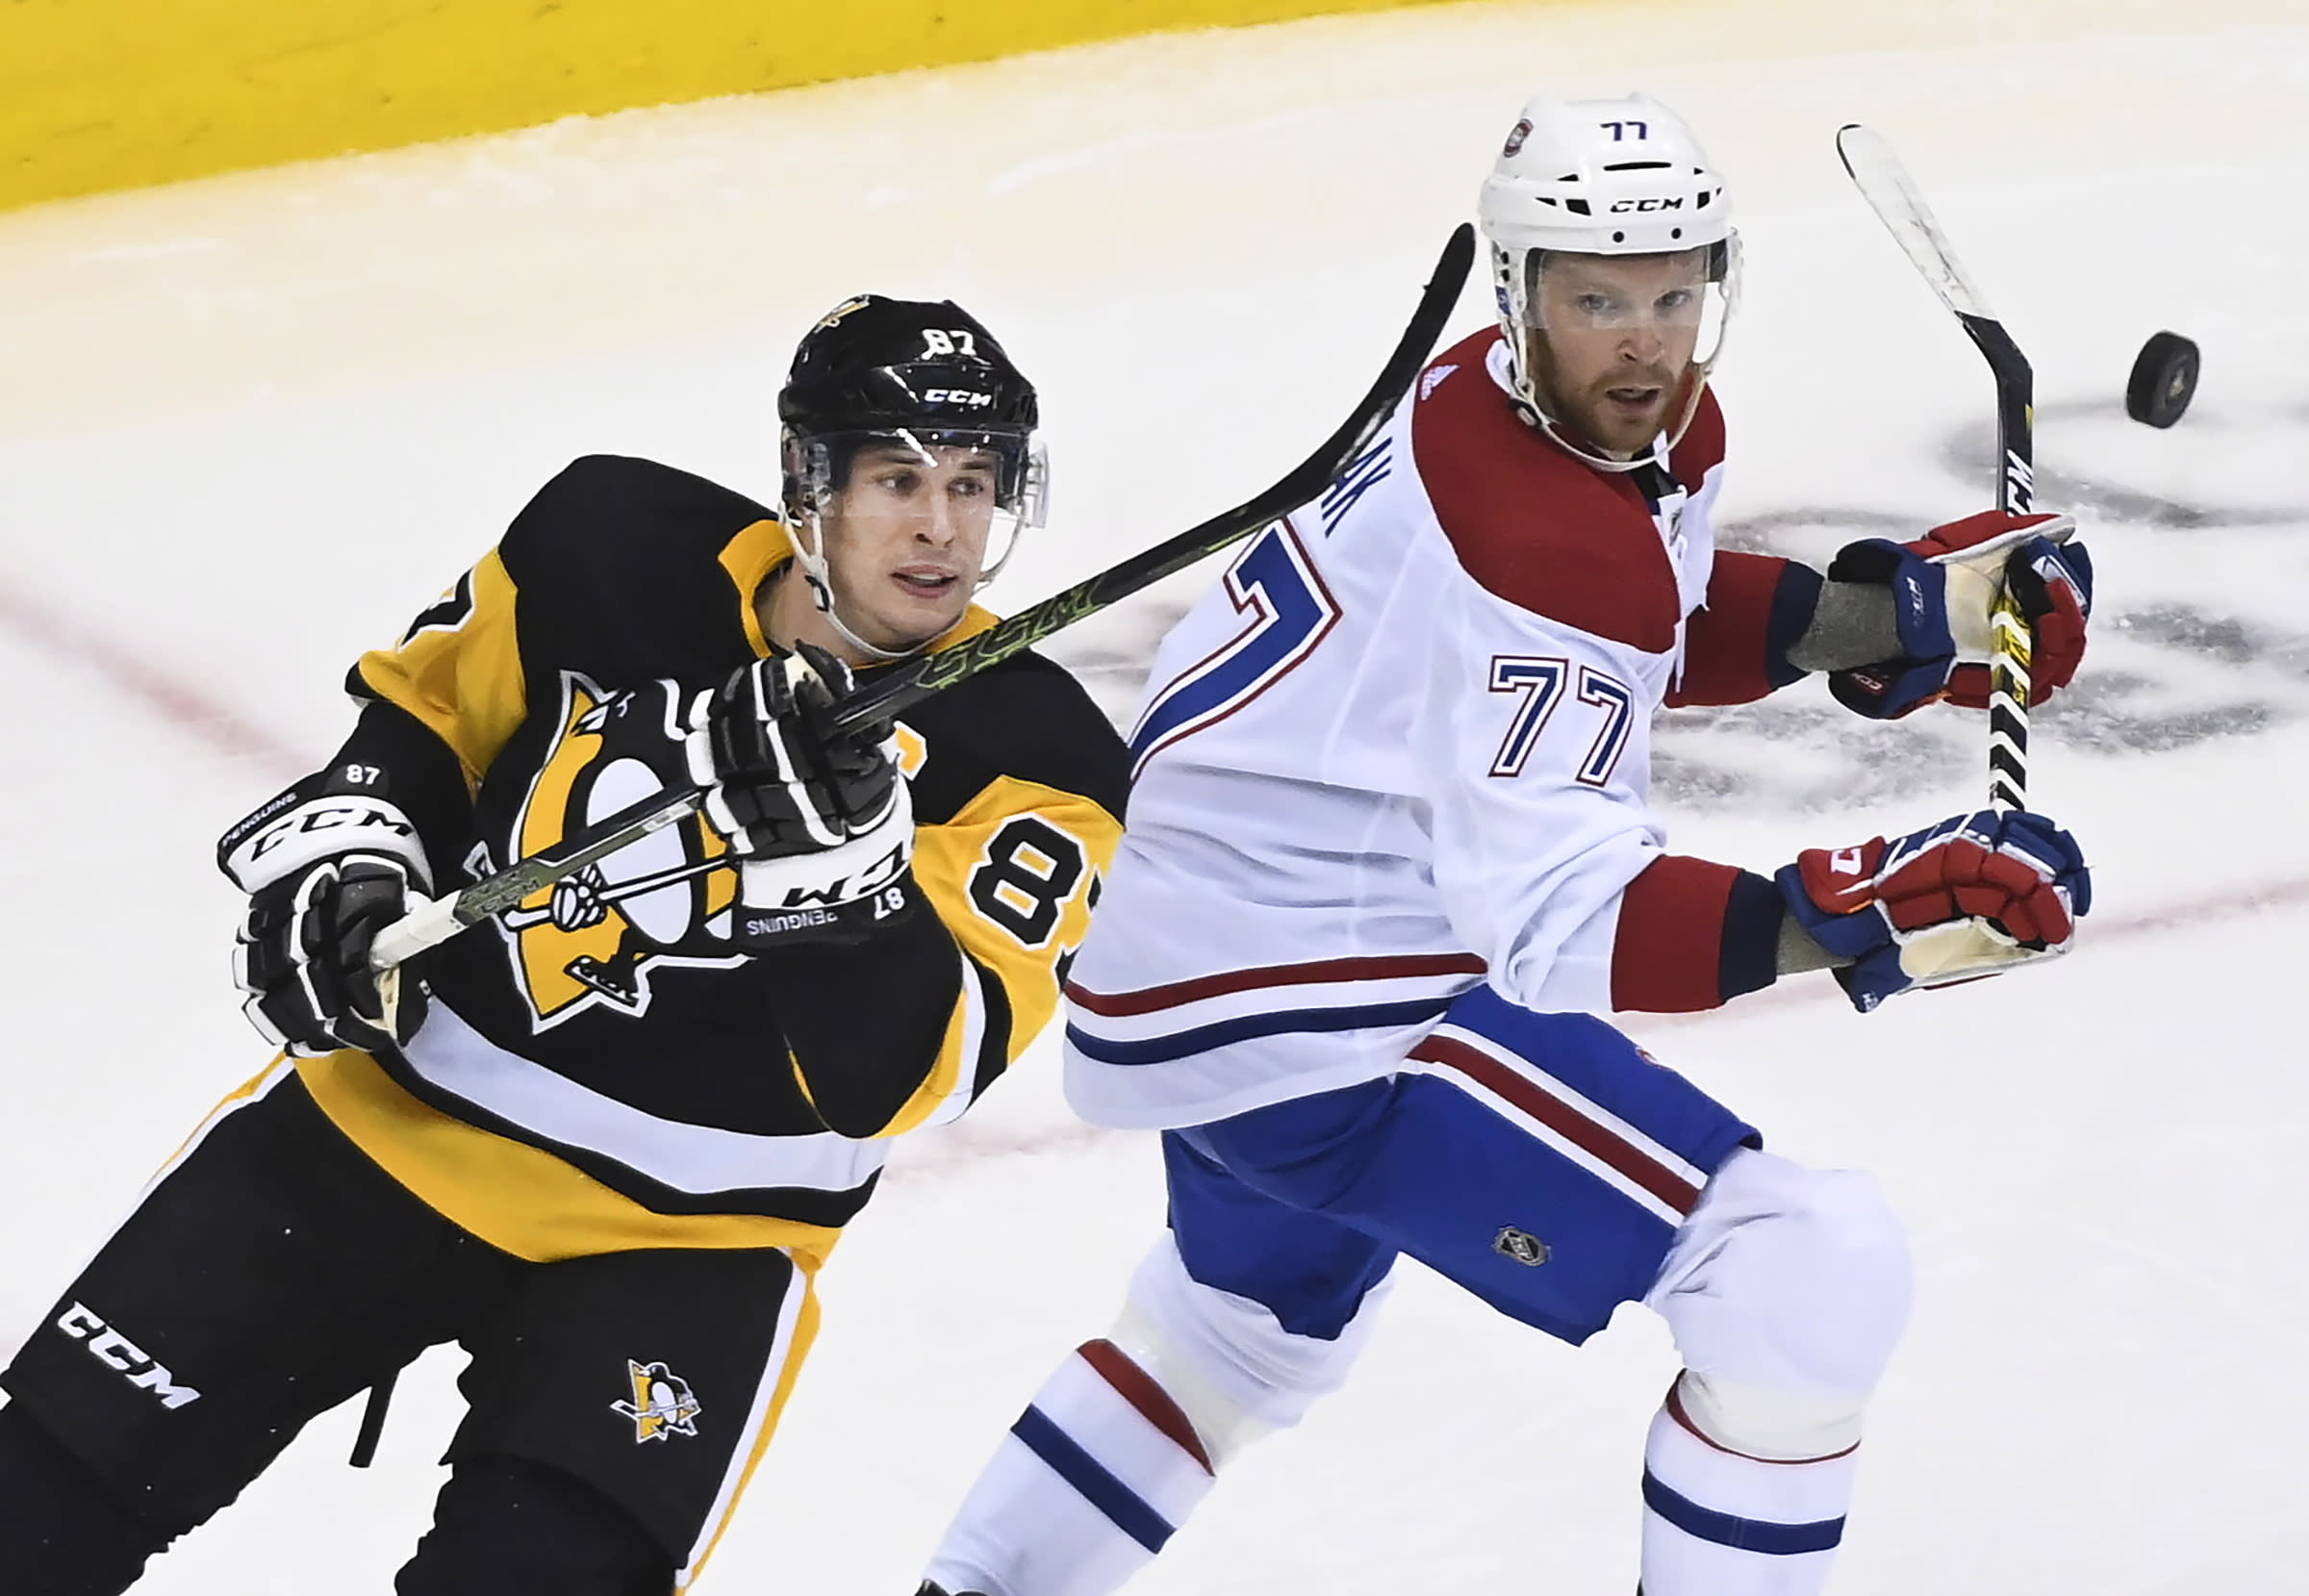 Pittsburgh Penguins center Sidney Crosby (87) eyes the puck next to Montreal Canadiens defenseman Brett Kulak (77) during the third period of an NHL hockey playoff game in Toronto, Saturday, Aug. 1, 2020. (Nathan Denette/The Canadian Press via AP)